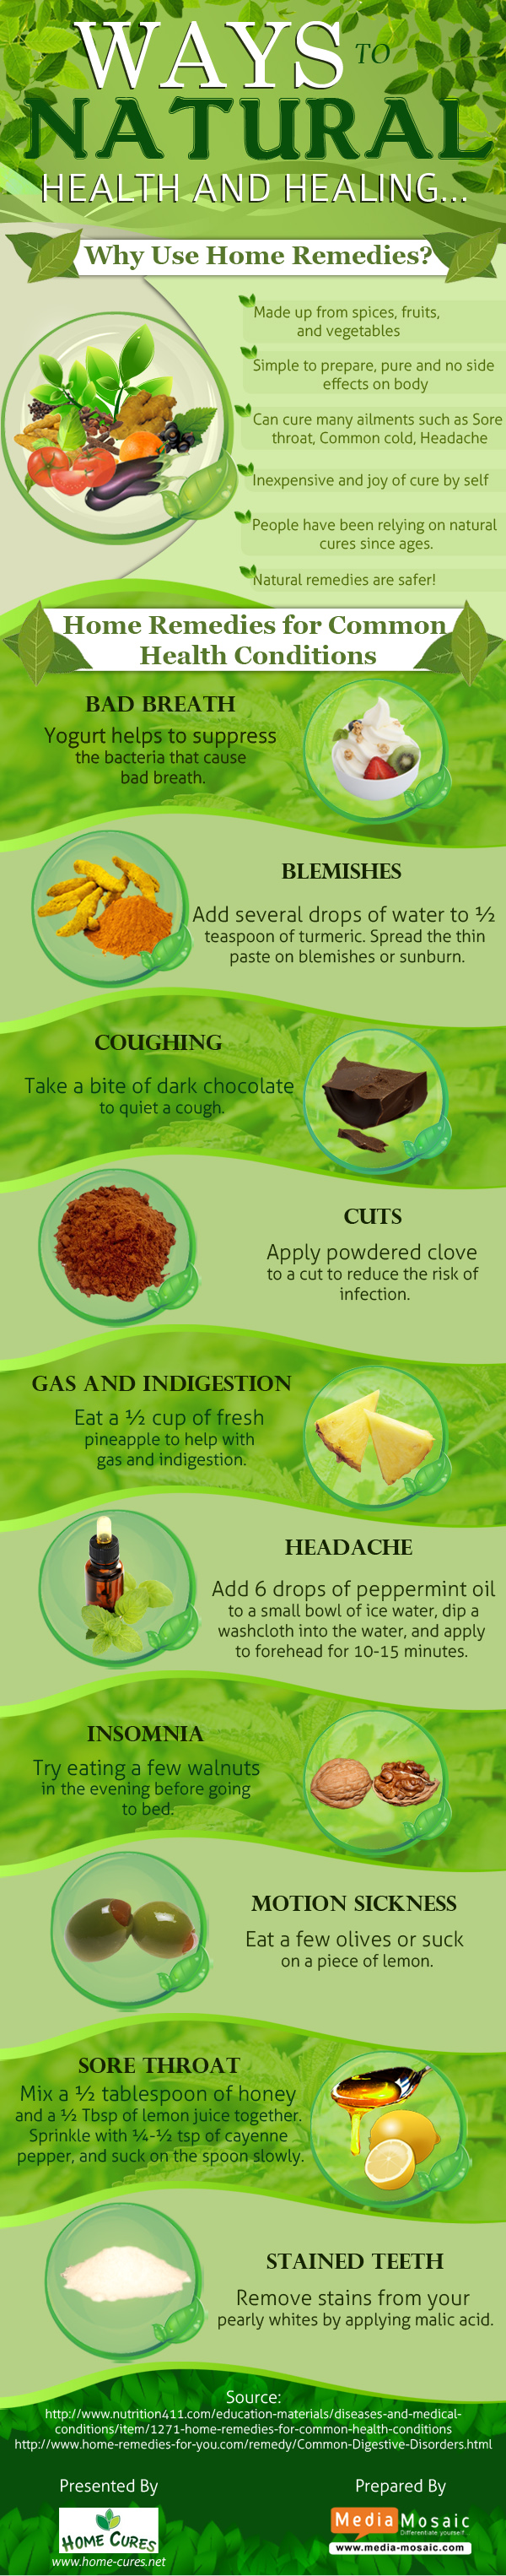 Ways To Natural Health and Healing